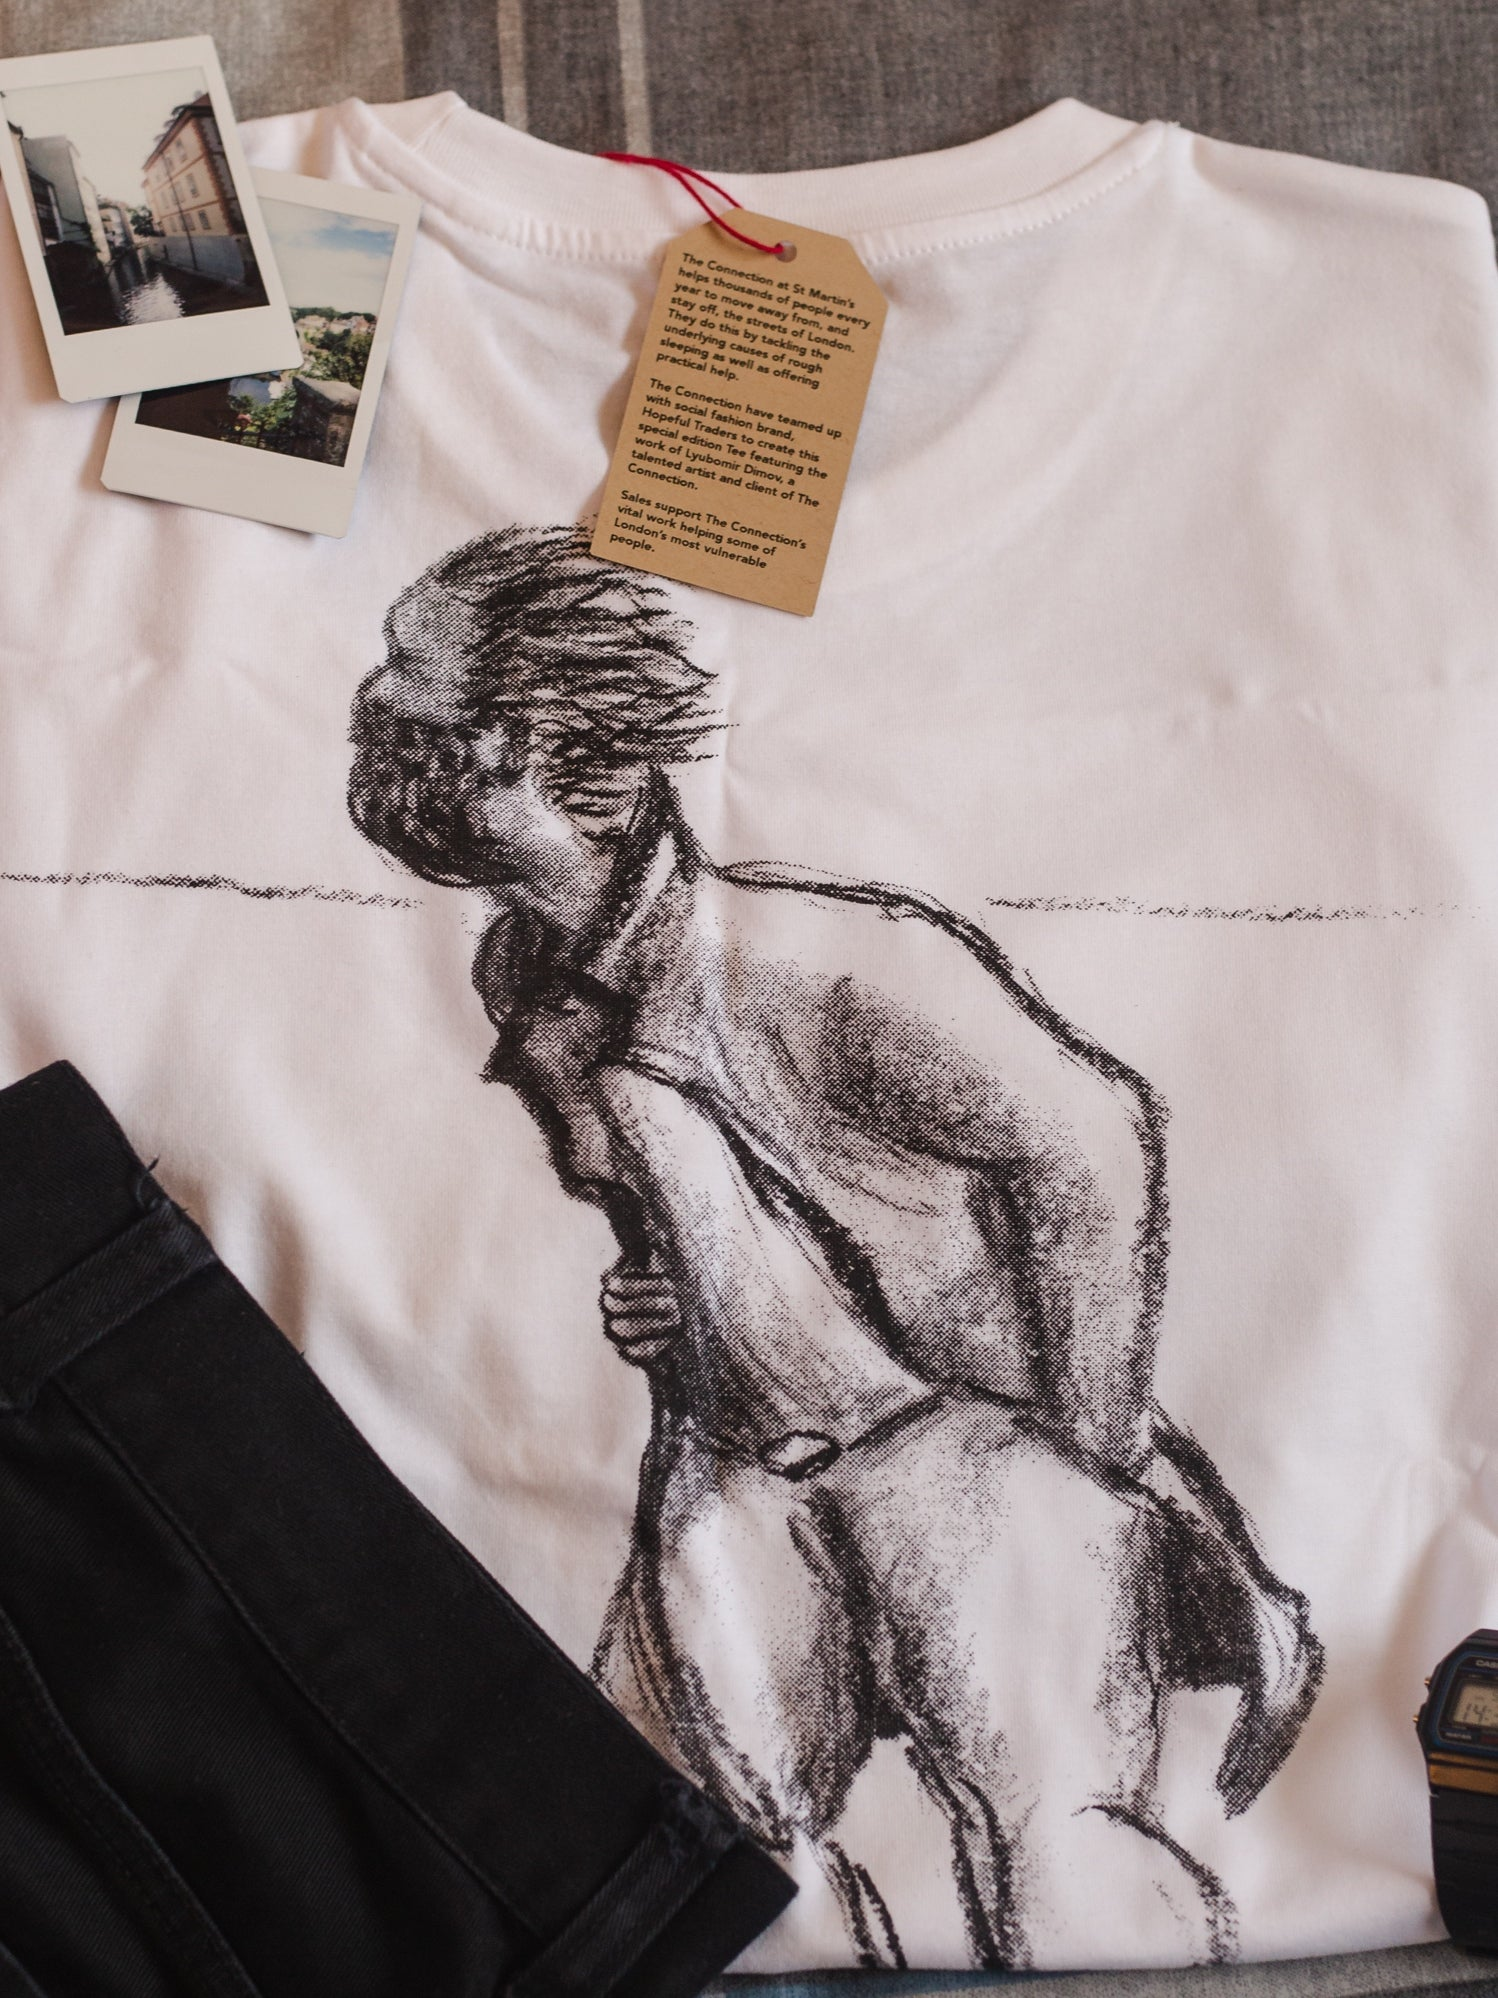 The organic 'footprints' tee folded so the drawn design of a figure walking in the cold on the back is clearly visible. The t-shirt is surrounded by  folded jeans, a casio watch and polaroid photos.